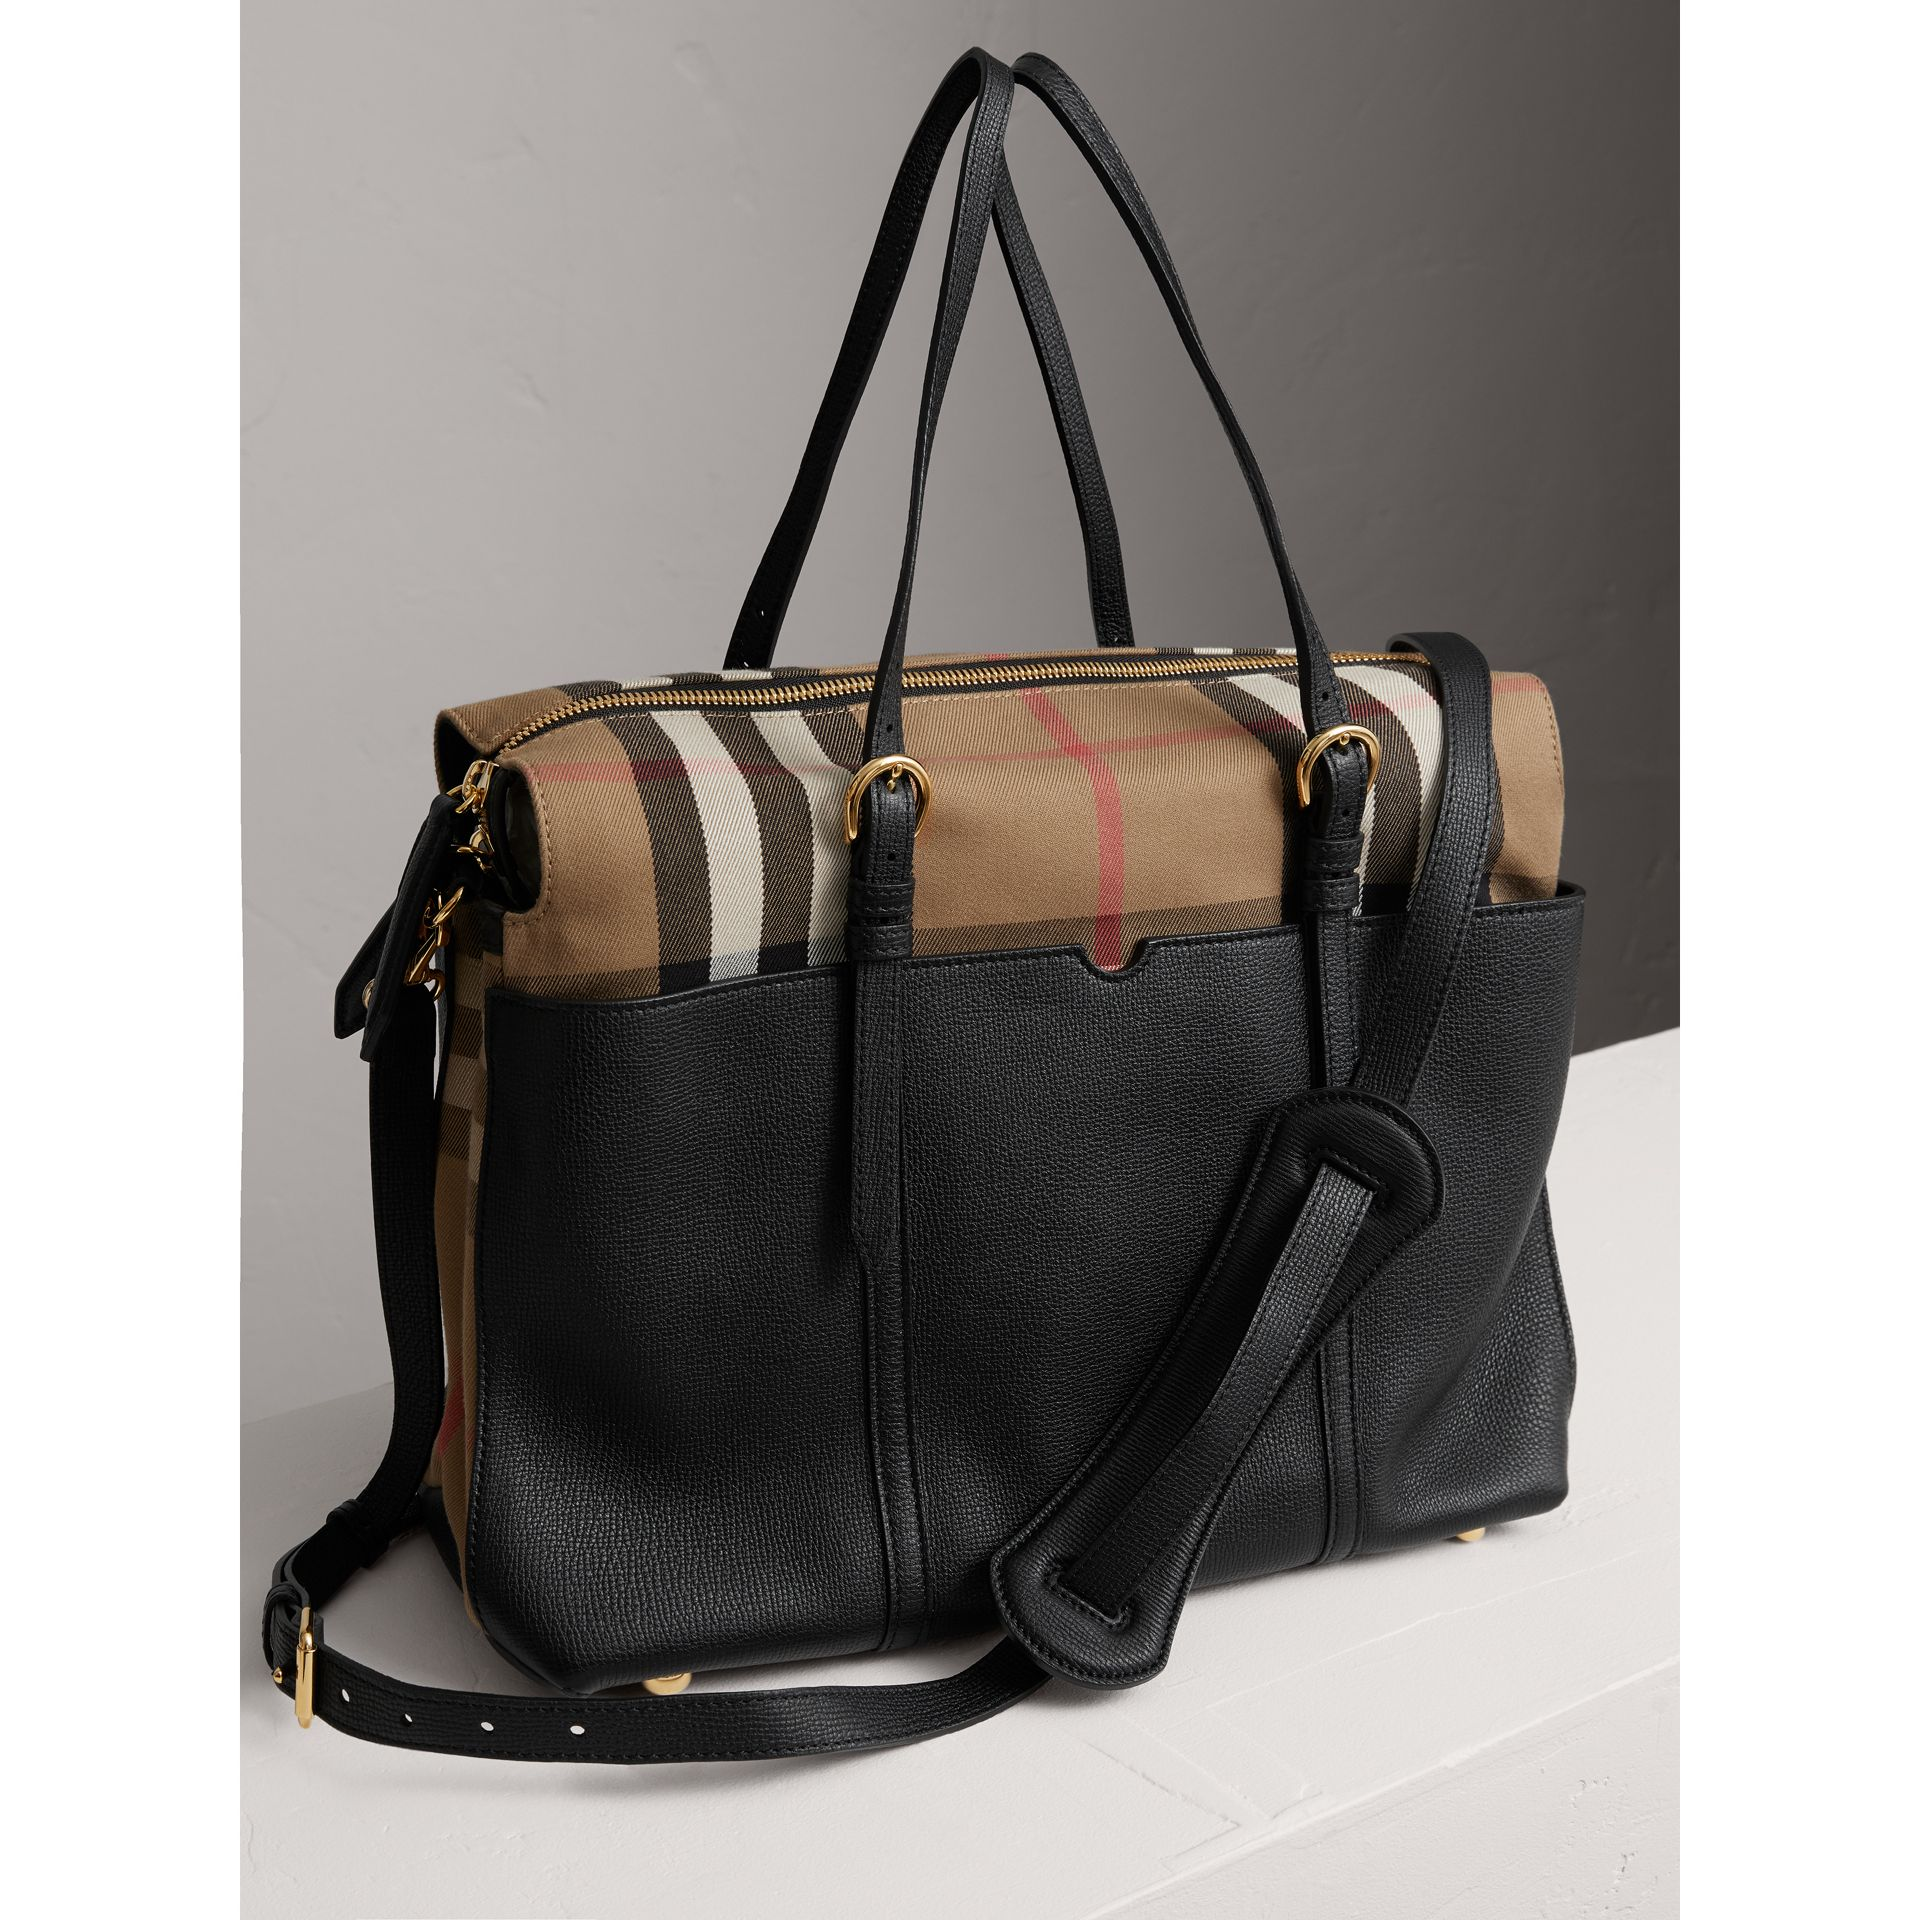 House Check and Leather Baby Changing Bag in Black | Burberry - gallery image 3